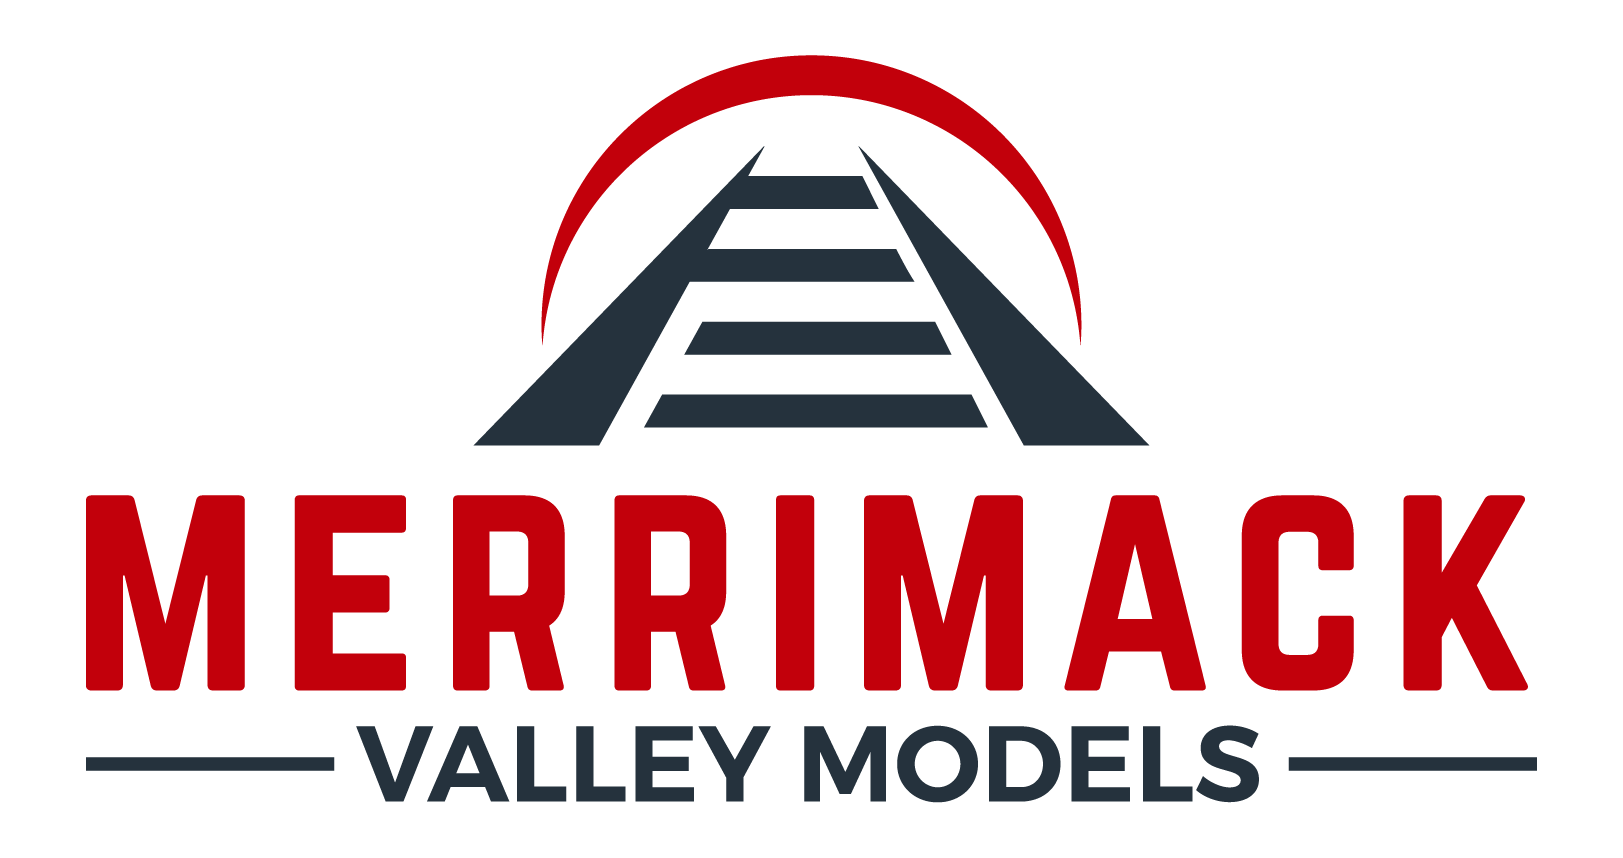 Merrimack Valley Models